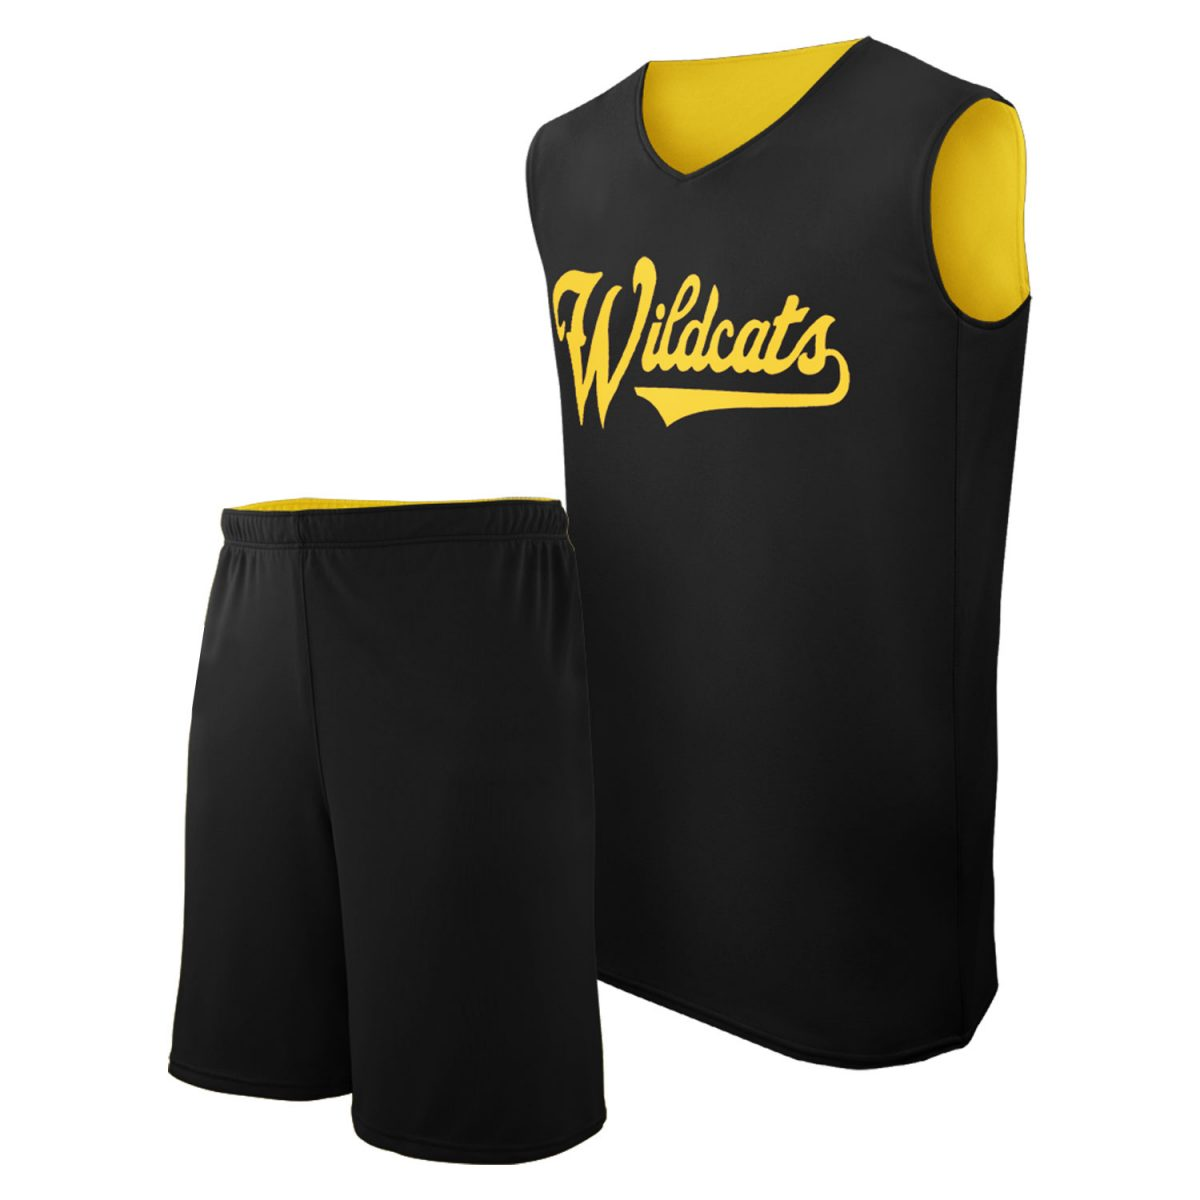 Boys Basketball Uniforms Manufacturers in Solapur